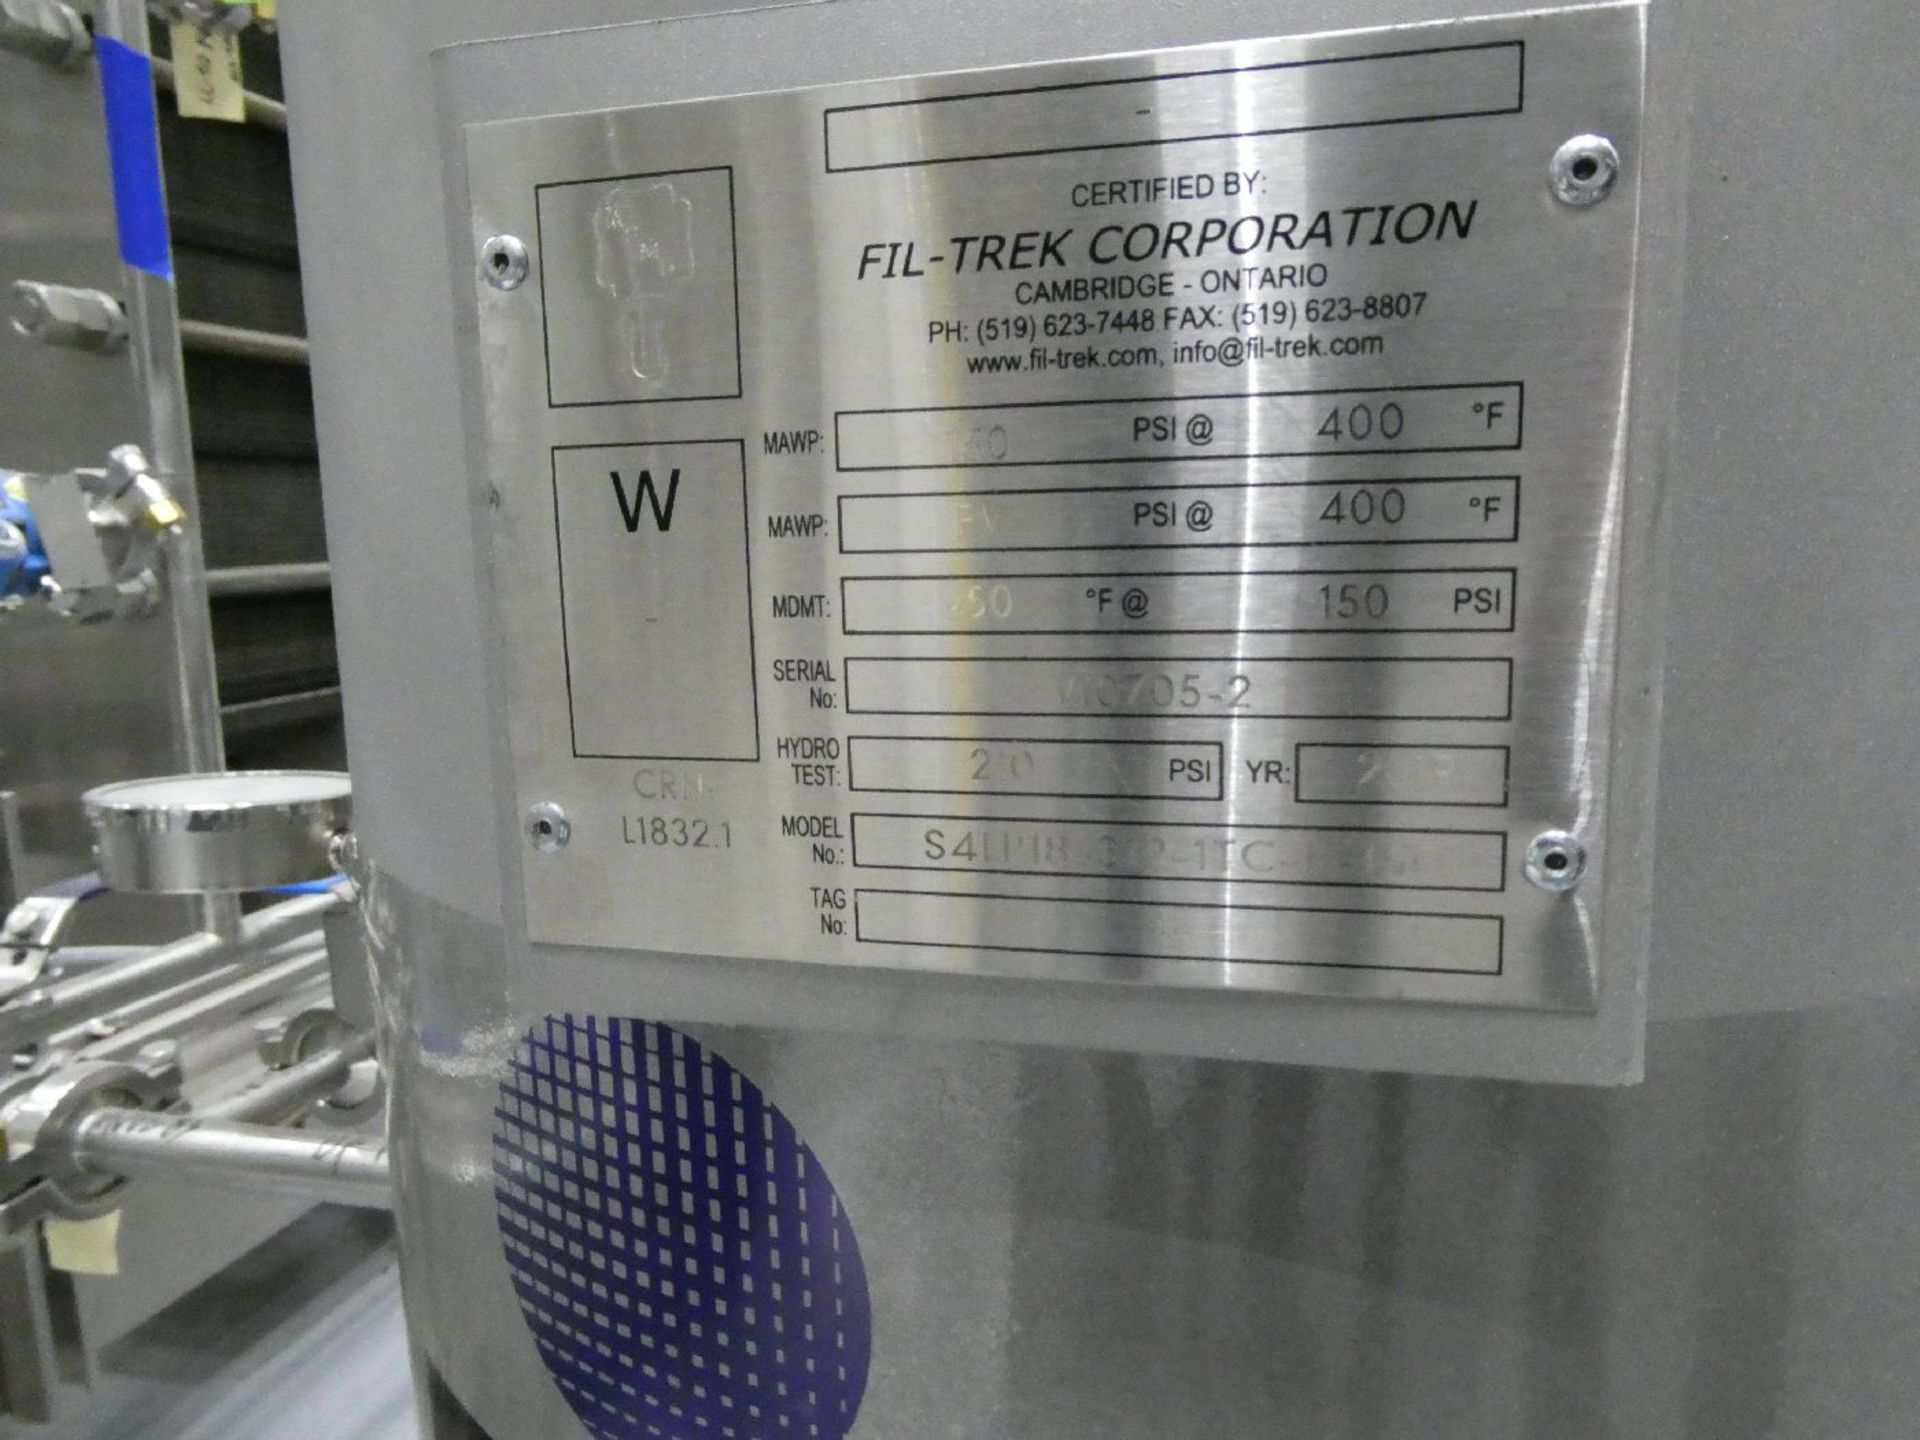 ROTAX Closed Loop Solvent Based Continuous Oil Extraction System - Image 19 of 68